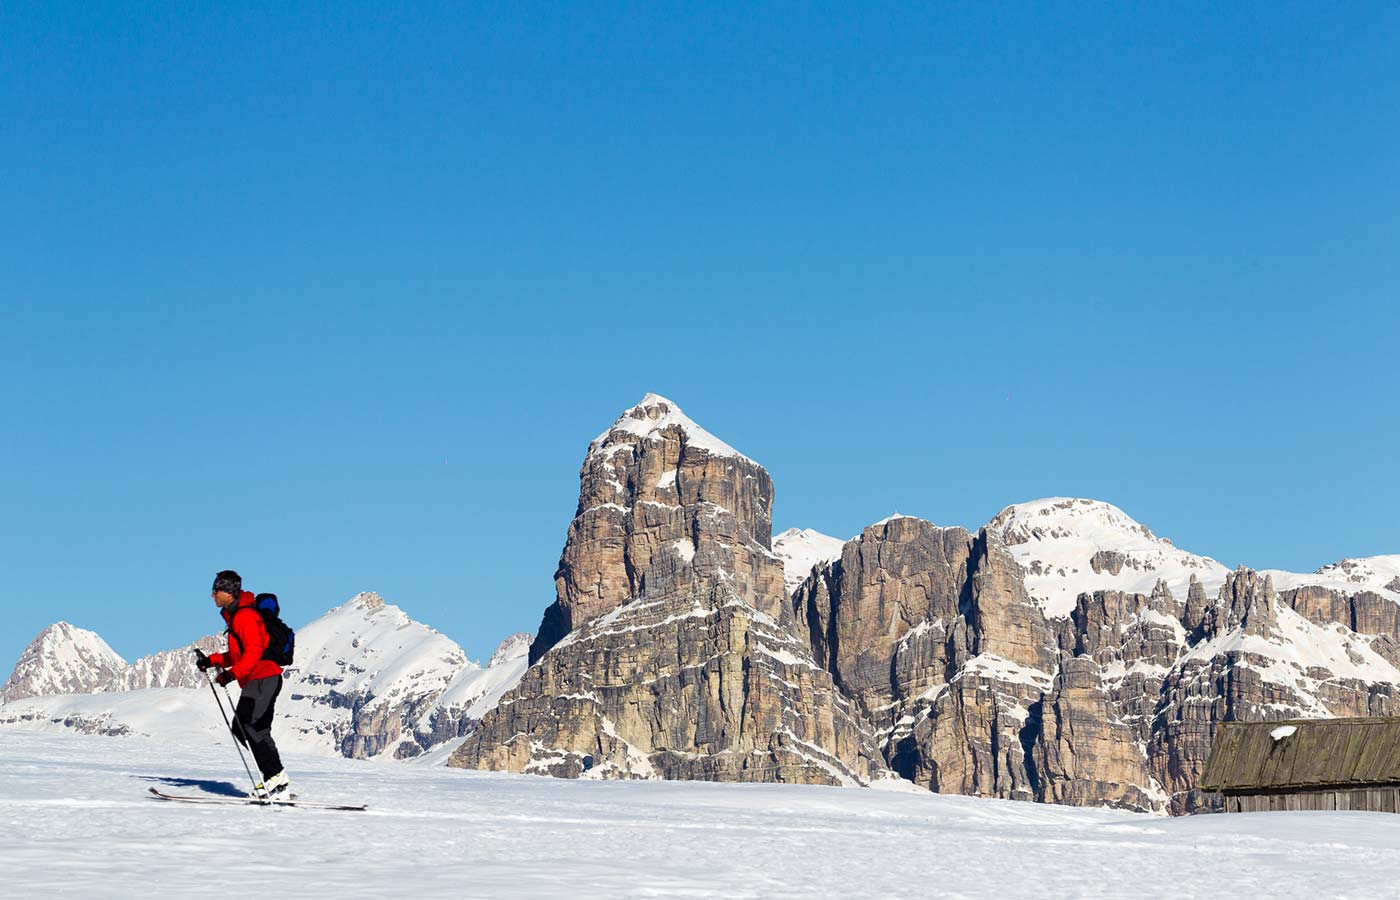 Ski tour with Dolomites at the back